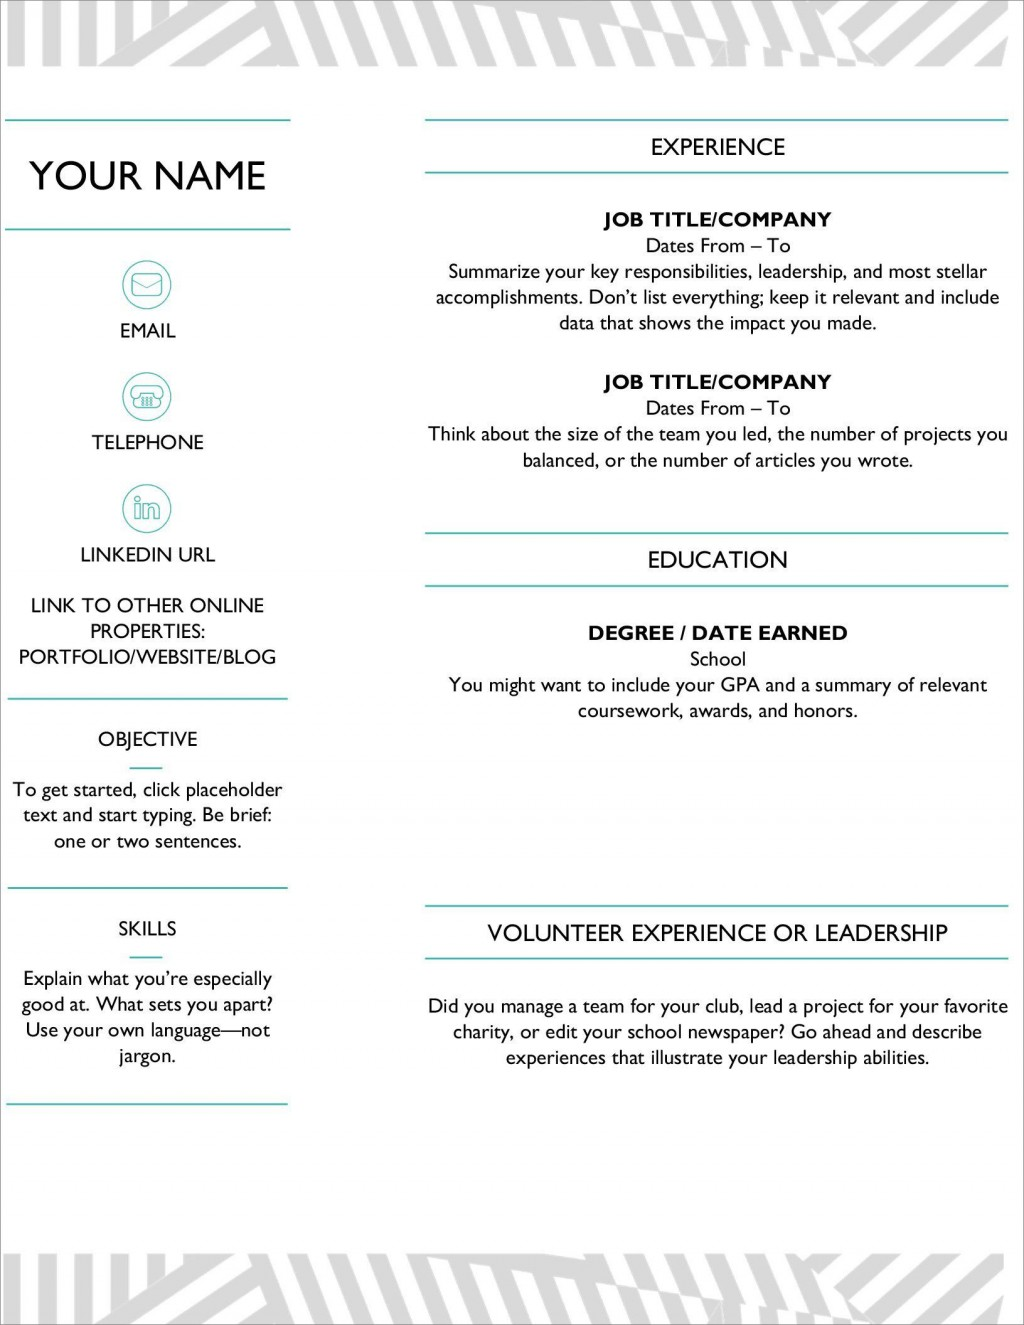 008 Unforgettable Basic Resume Template Word Photo  Free Download 2020Large